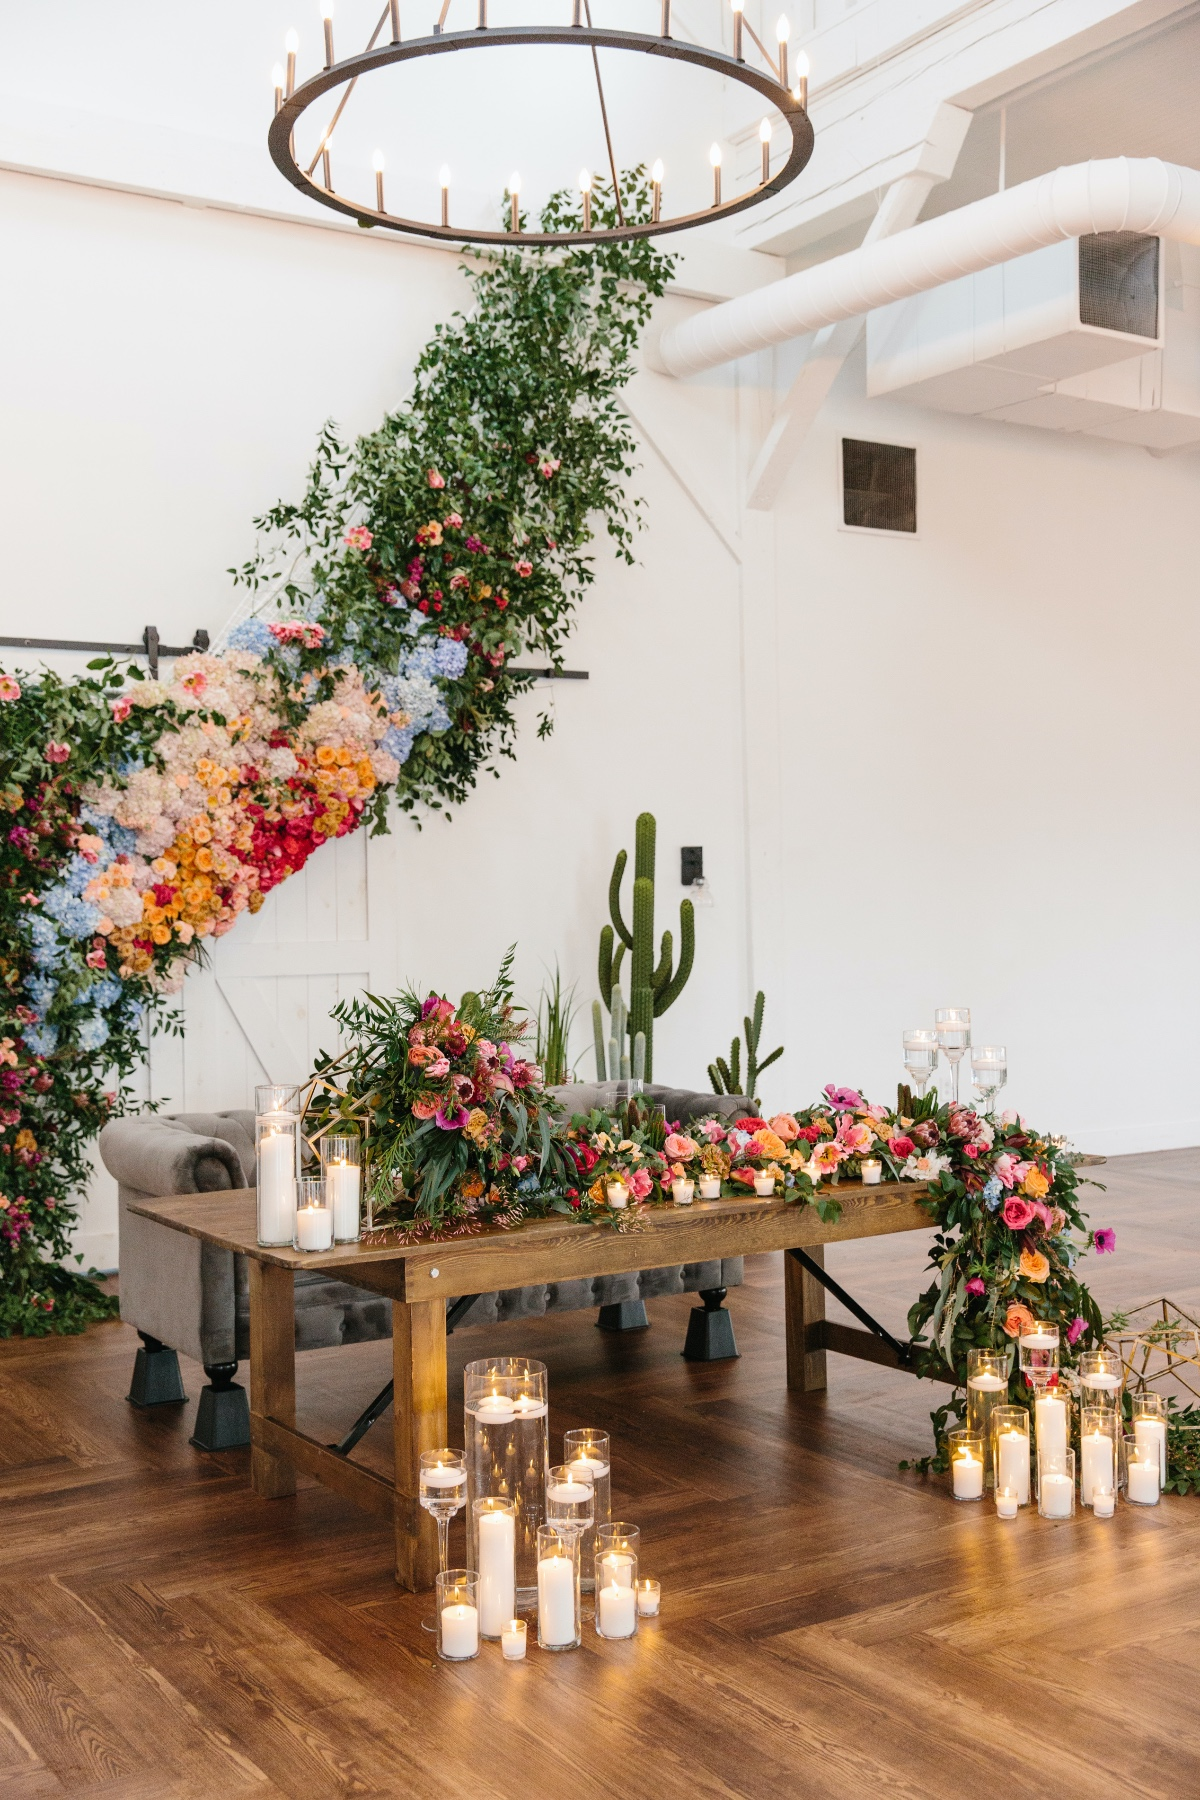 Sweetheart table design ideas with bright florals and candles